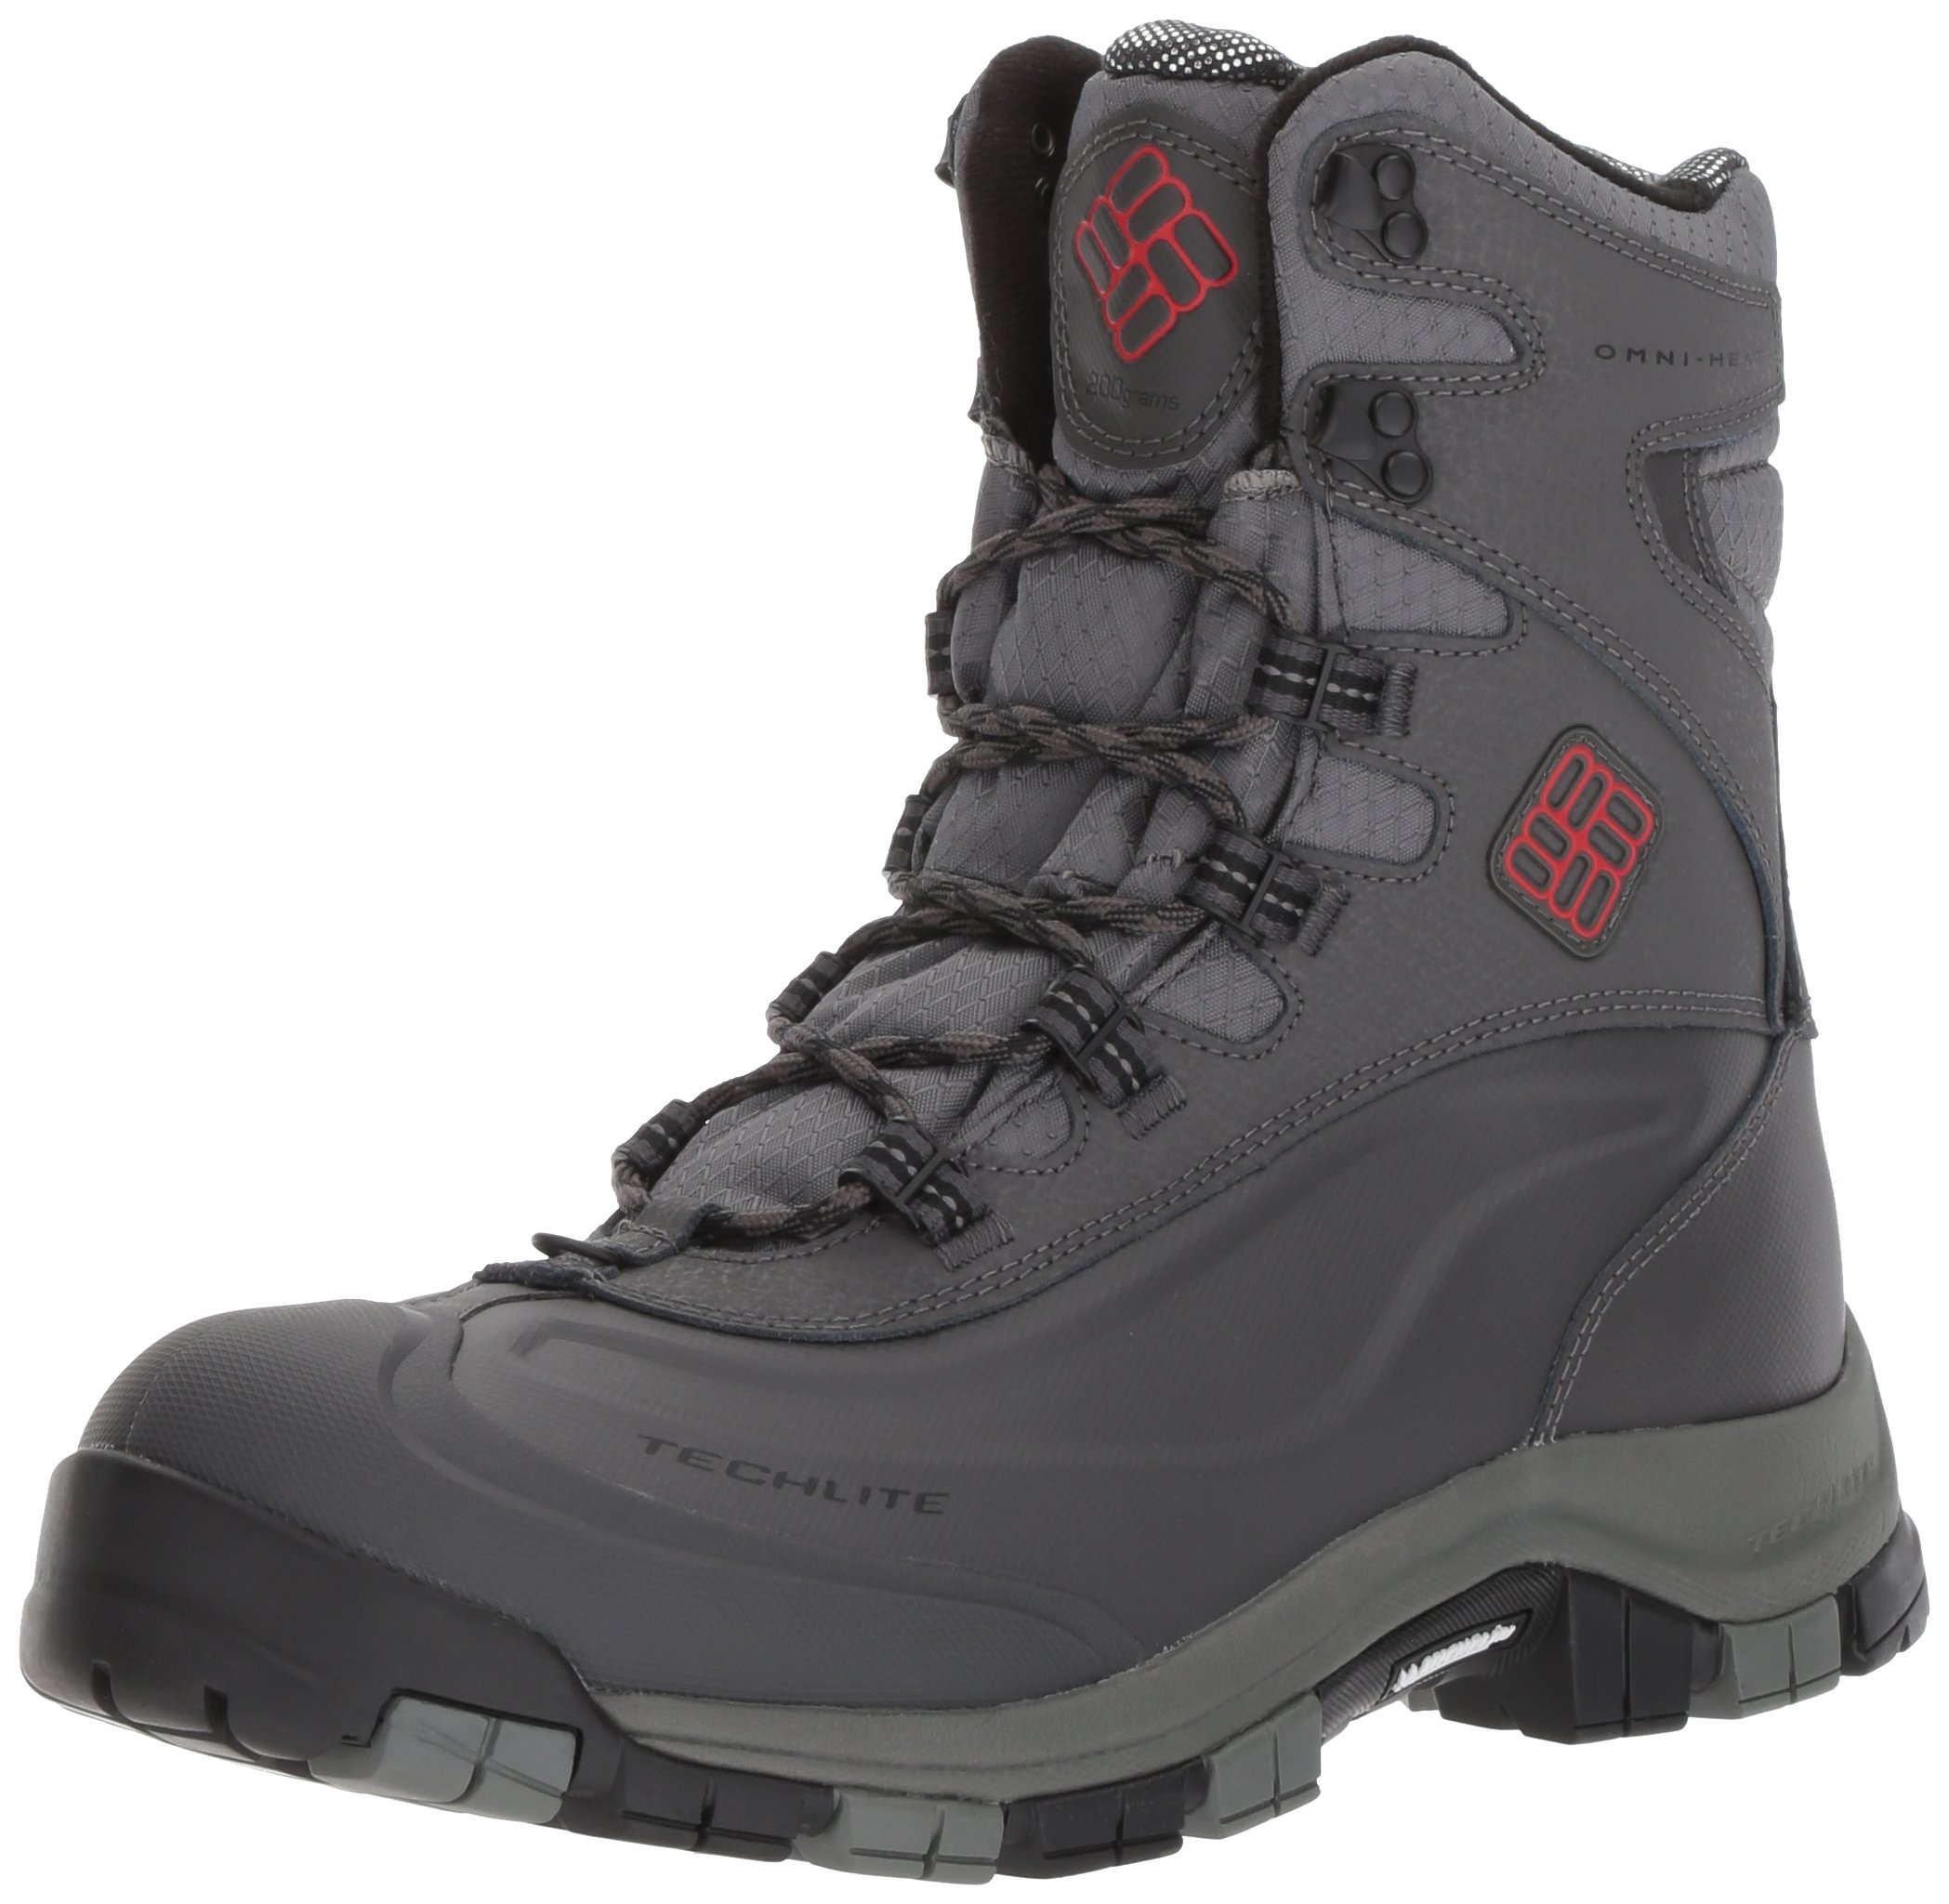 Columbia Men's Bugaboot Plus Omni-Heat Michelin Snow Boot, Charcoal, Bright Red, 8 D US